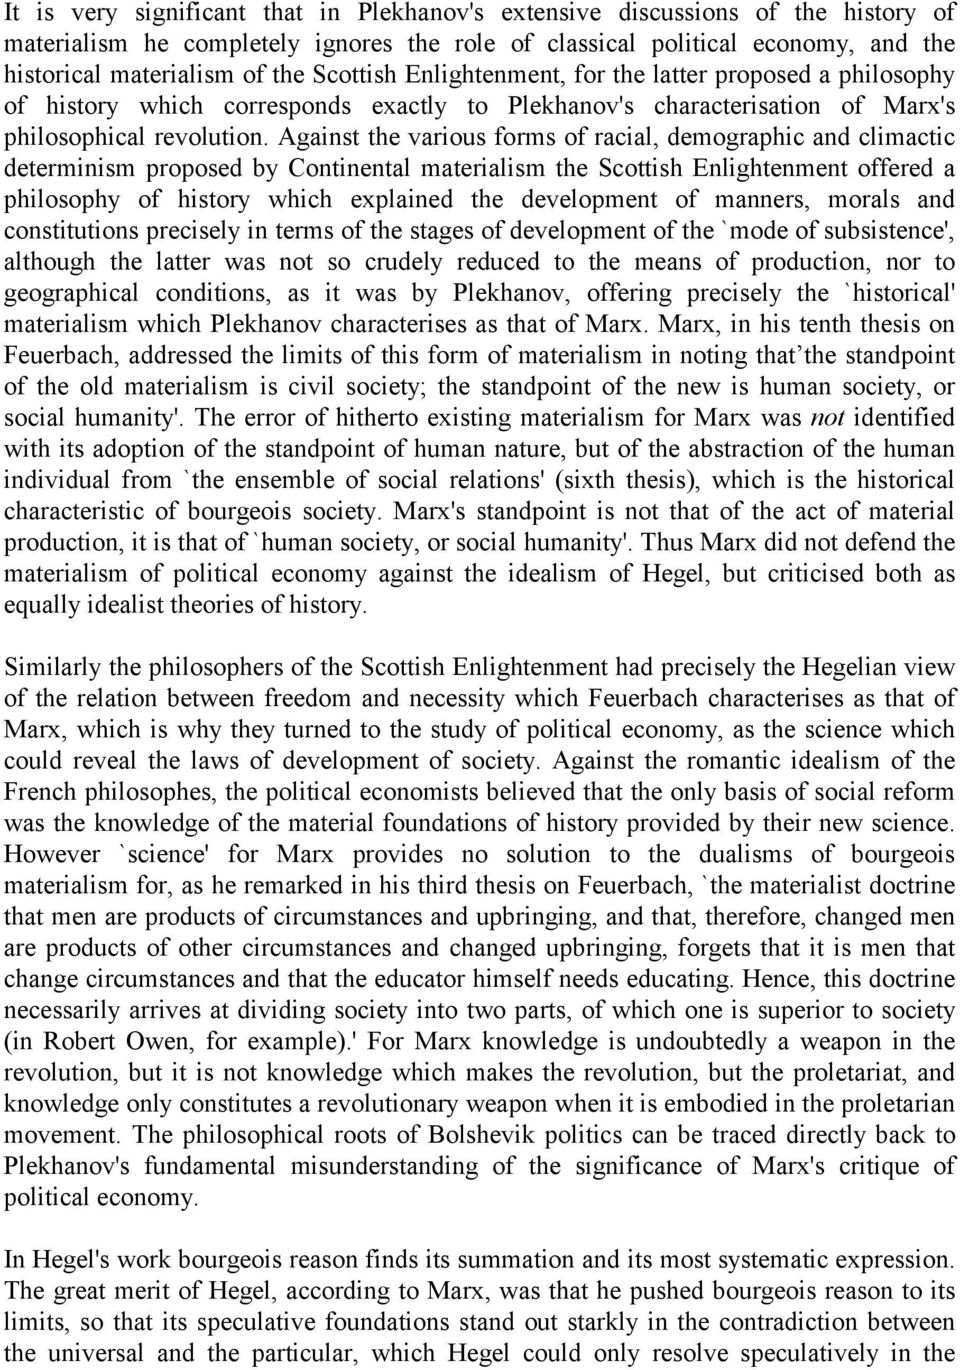 Against the various forms of racial, demographic and climactic determinism proposed by Continental materialism the Scottish Enlightenment offered a philosophy of history which explained the